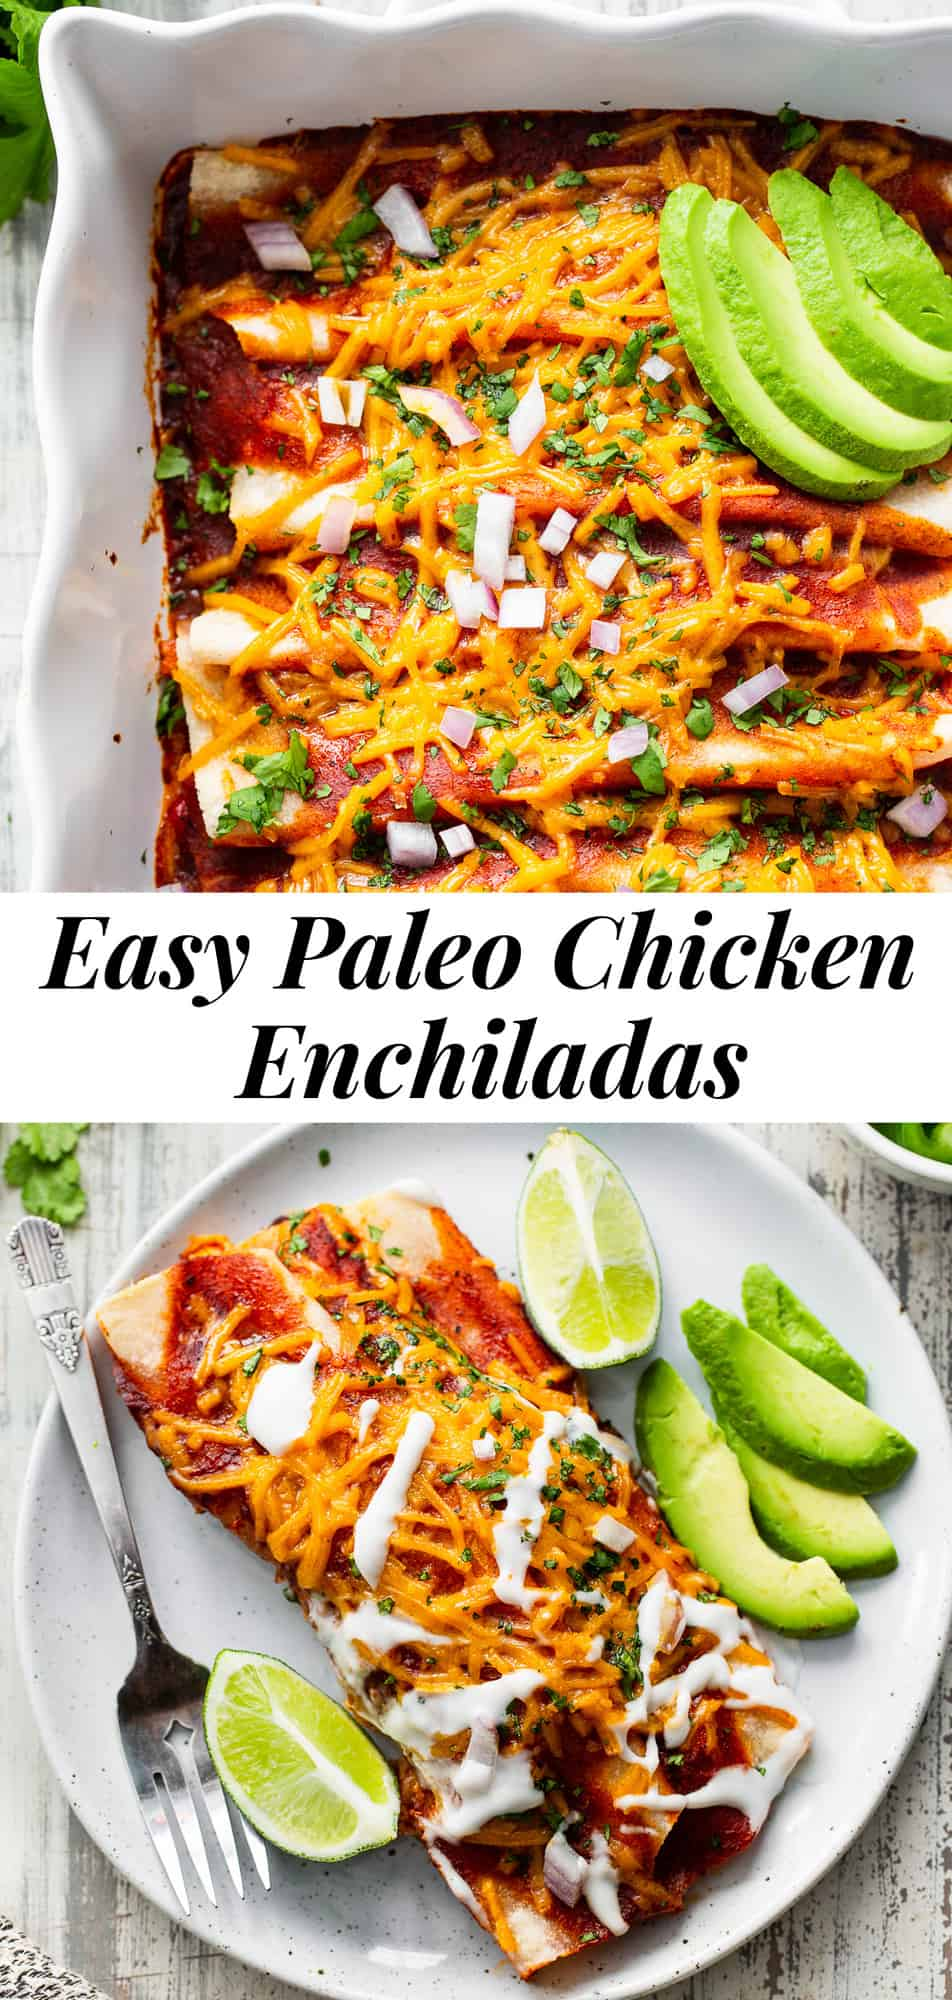 These classic paleo chicken enchiladas are made easy with cassava tortillas, a flavor-packed filing and all your favorite (dairy-free) toppings. This family favorite recipe comes together quickly and easily and no one would ever guess these enchiladas are grain free and dairy free! #paleo #cleaneating #dairyfree #enchiladas